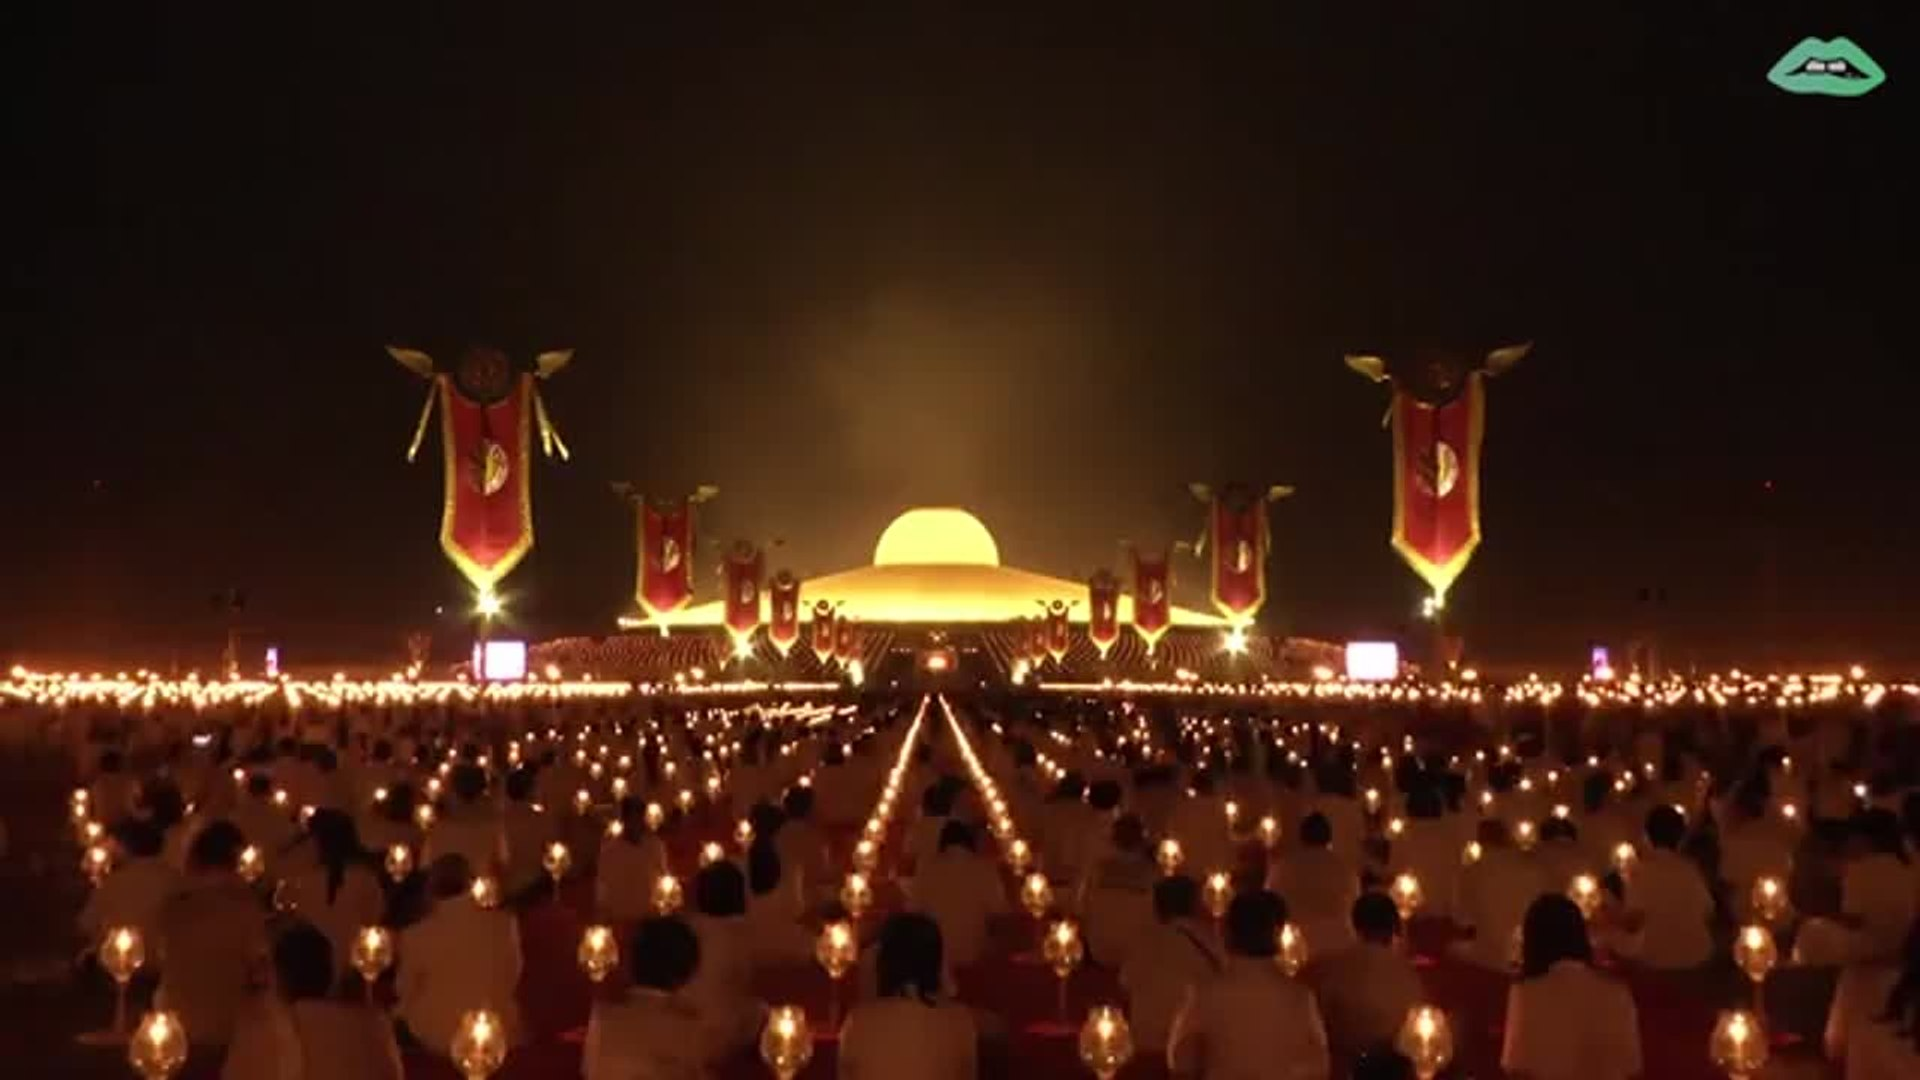 Every year, thousands of Buddhist monks gather to pray at a temple that looks like a UFO.